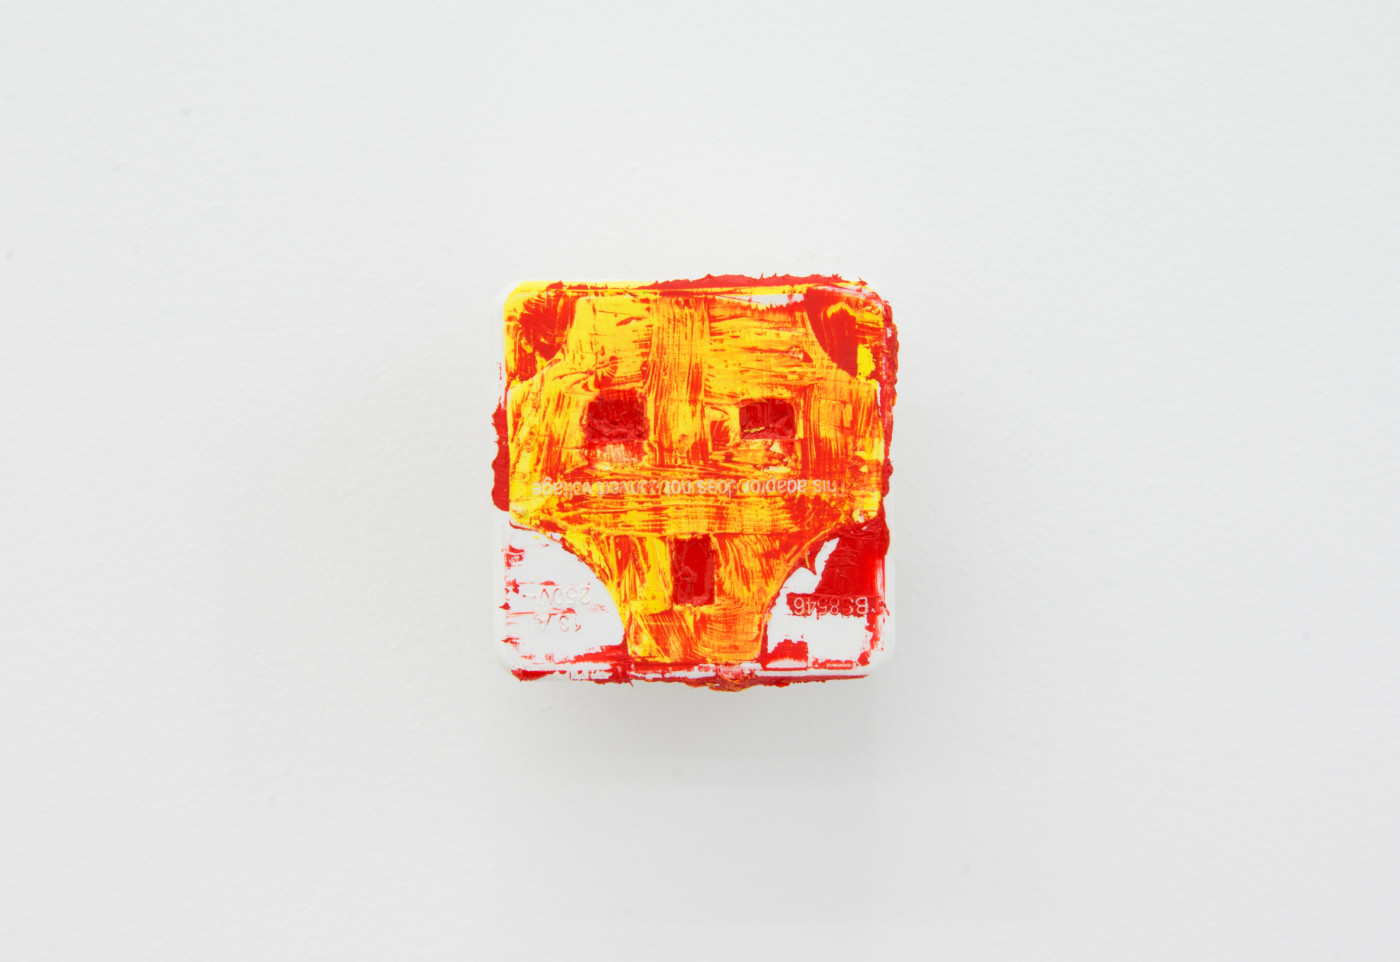 KEITH FARQUHAR  Scream #8</I>, 2019 Oil on travel adaptor 6 x 6 x 4,6 cm / 2.3 x 2.3 x 1.8 in